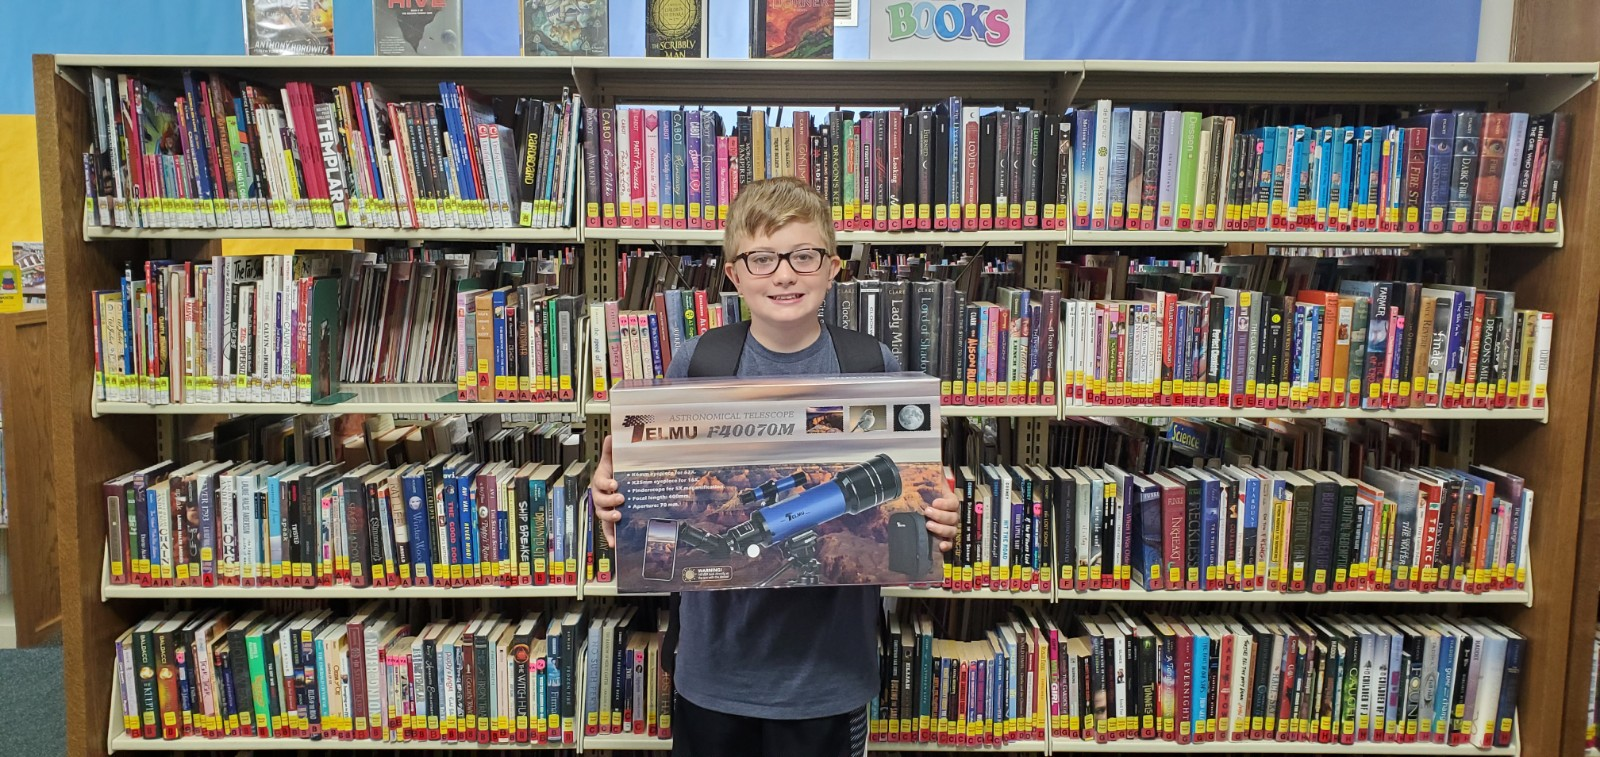 Congrats to lucky drawing winner Zavier Mayabb as winner of the children's grand prize for the Summer Reading Program. He won a fabulous new astronomical telescope!